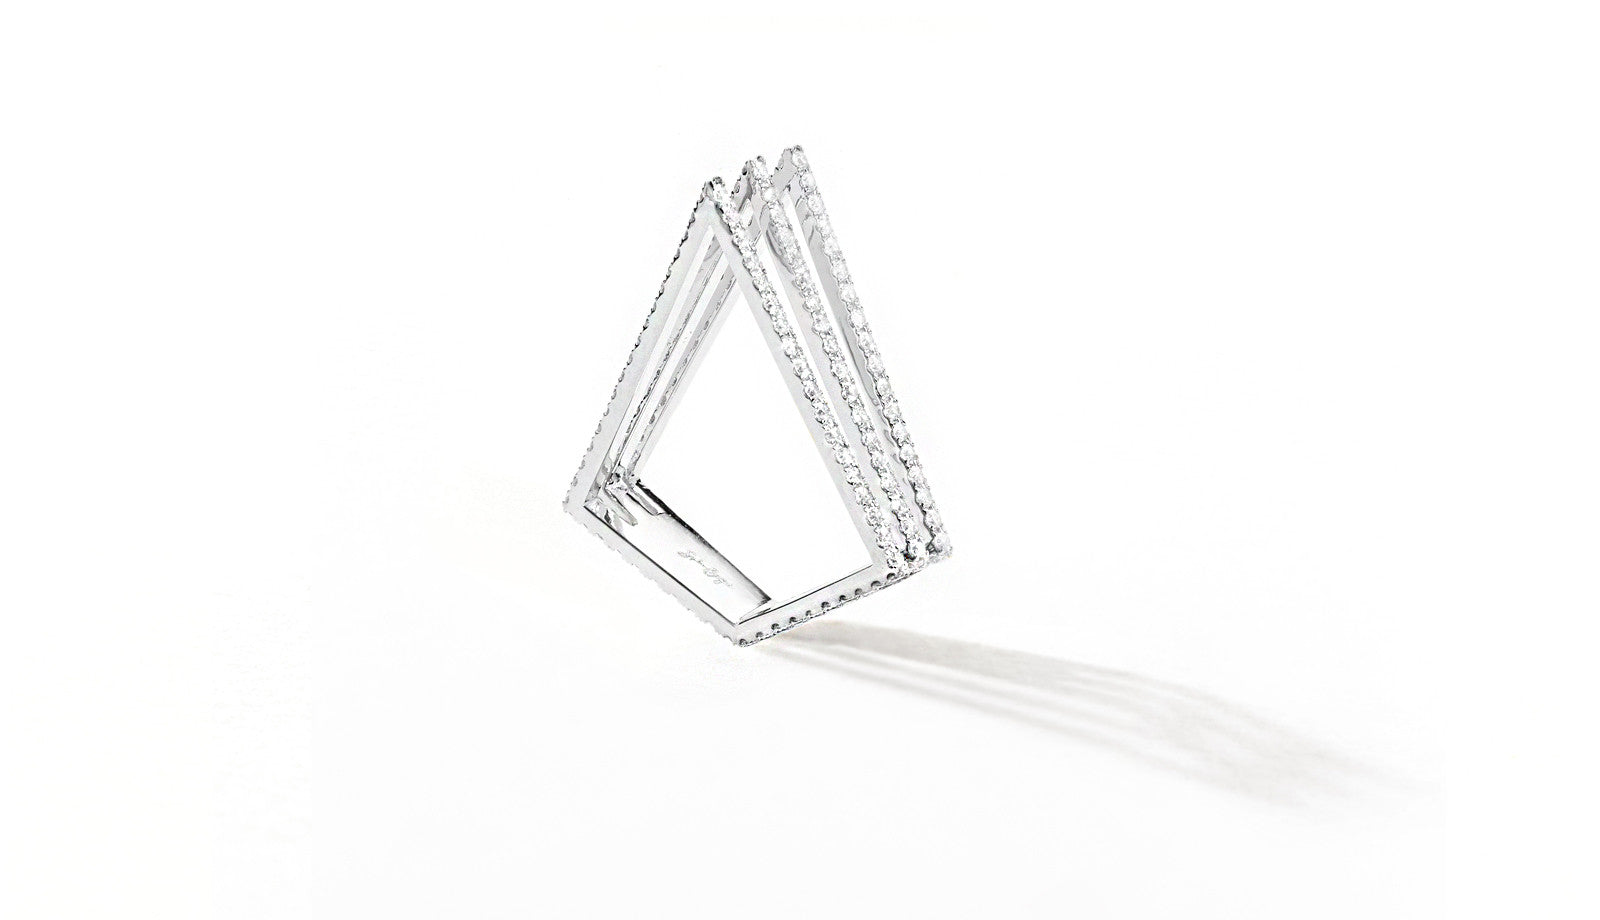 Sophie Birgitt Jewellery LOVE TRIANGLE 18K White Gold